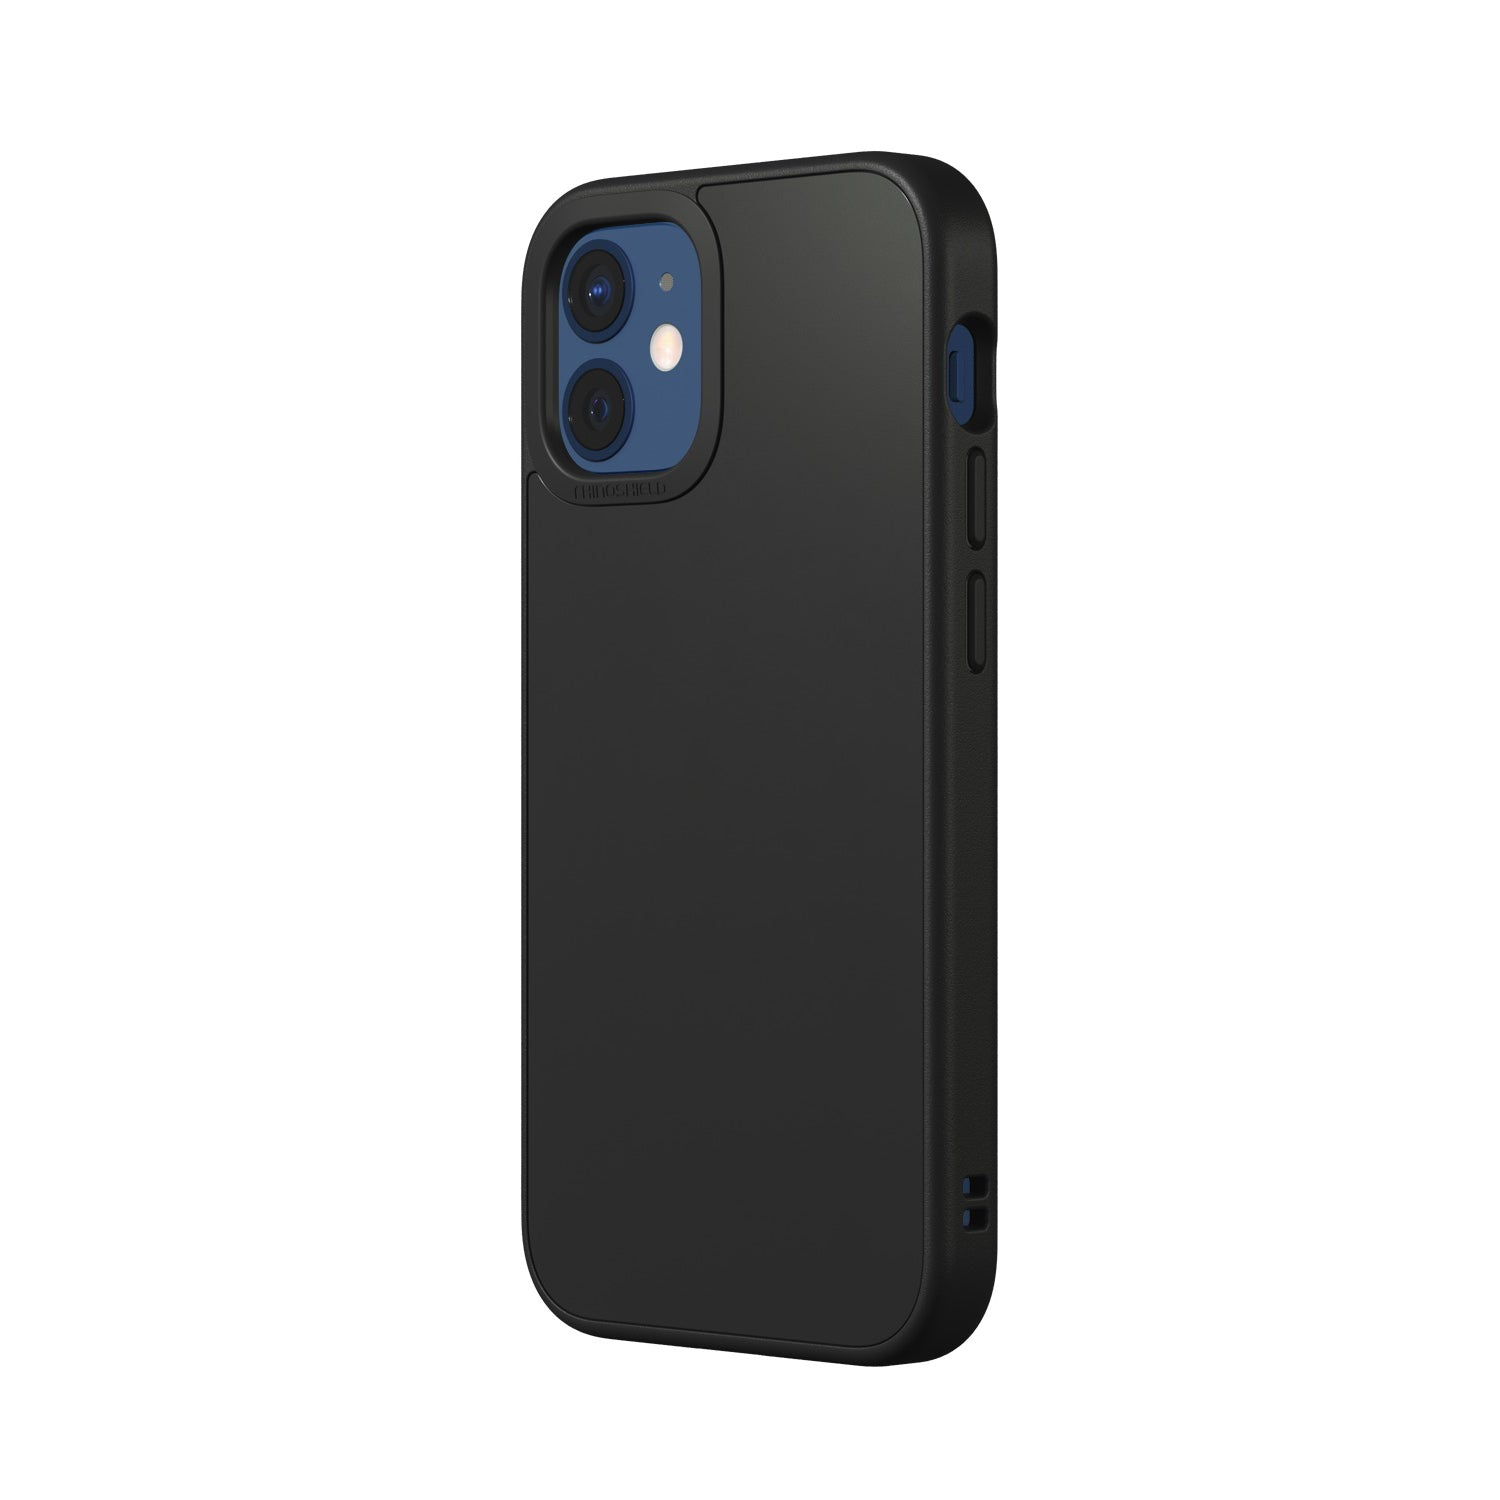 RhinoShield SolidSuit Rugged Case For iPhone 12 mini - Classic Black